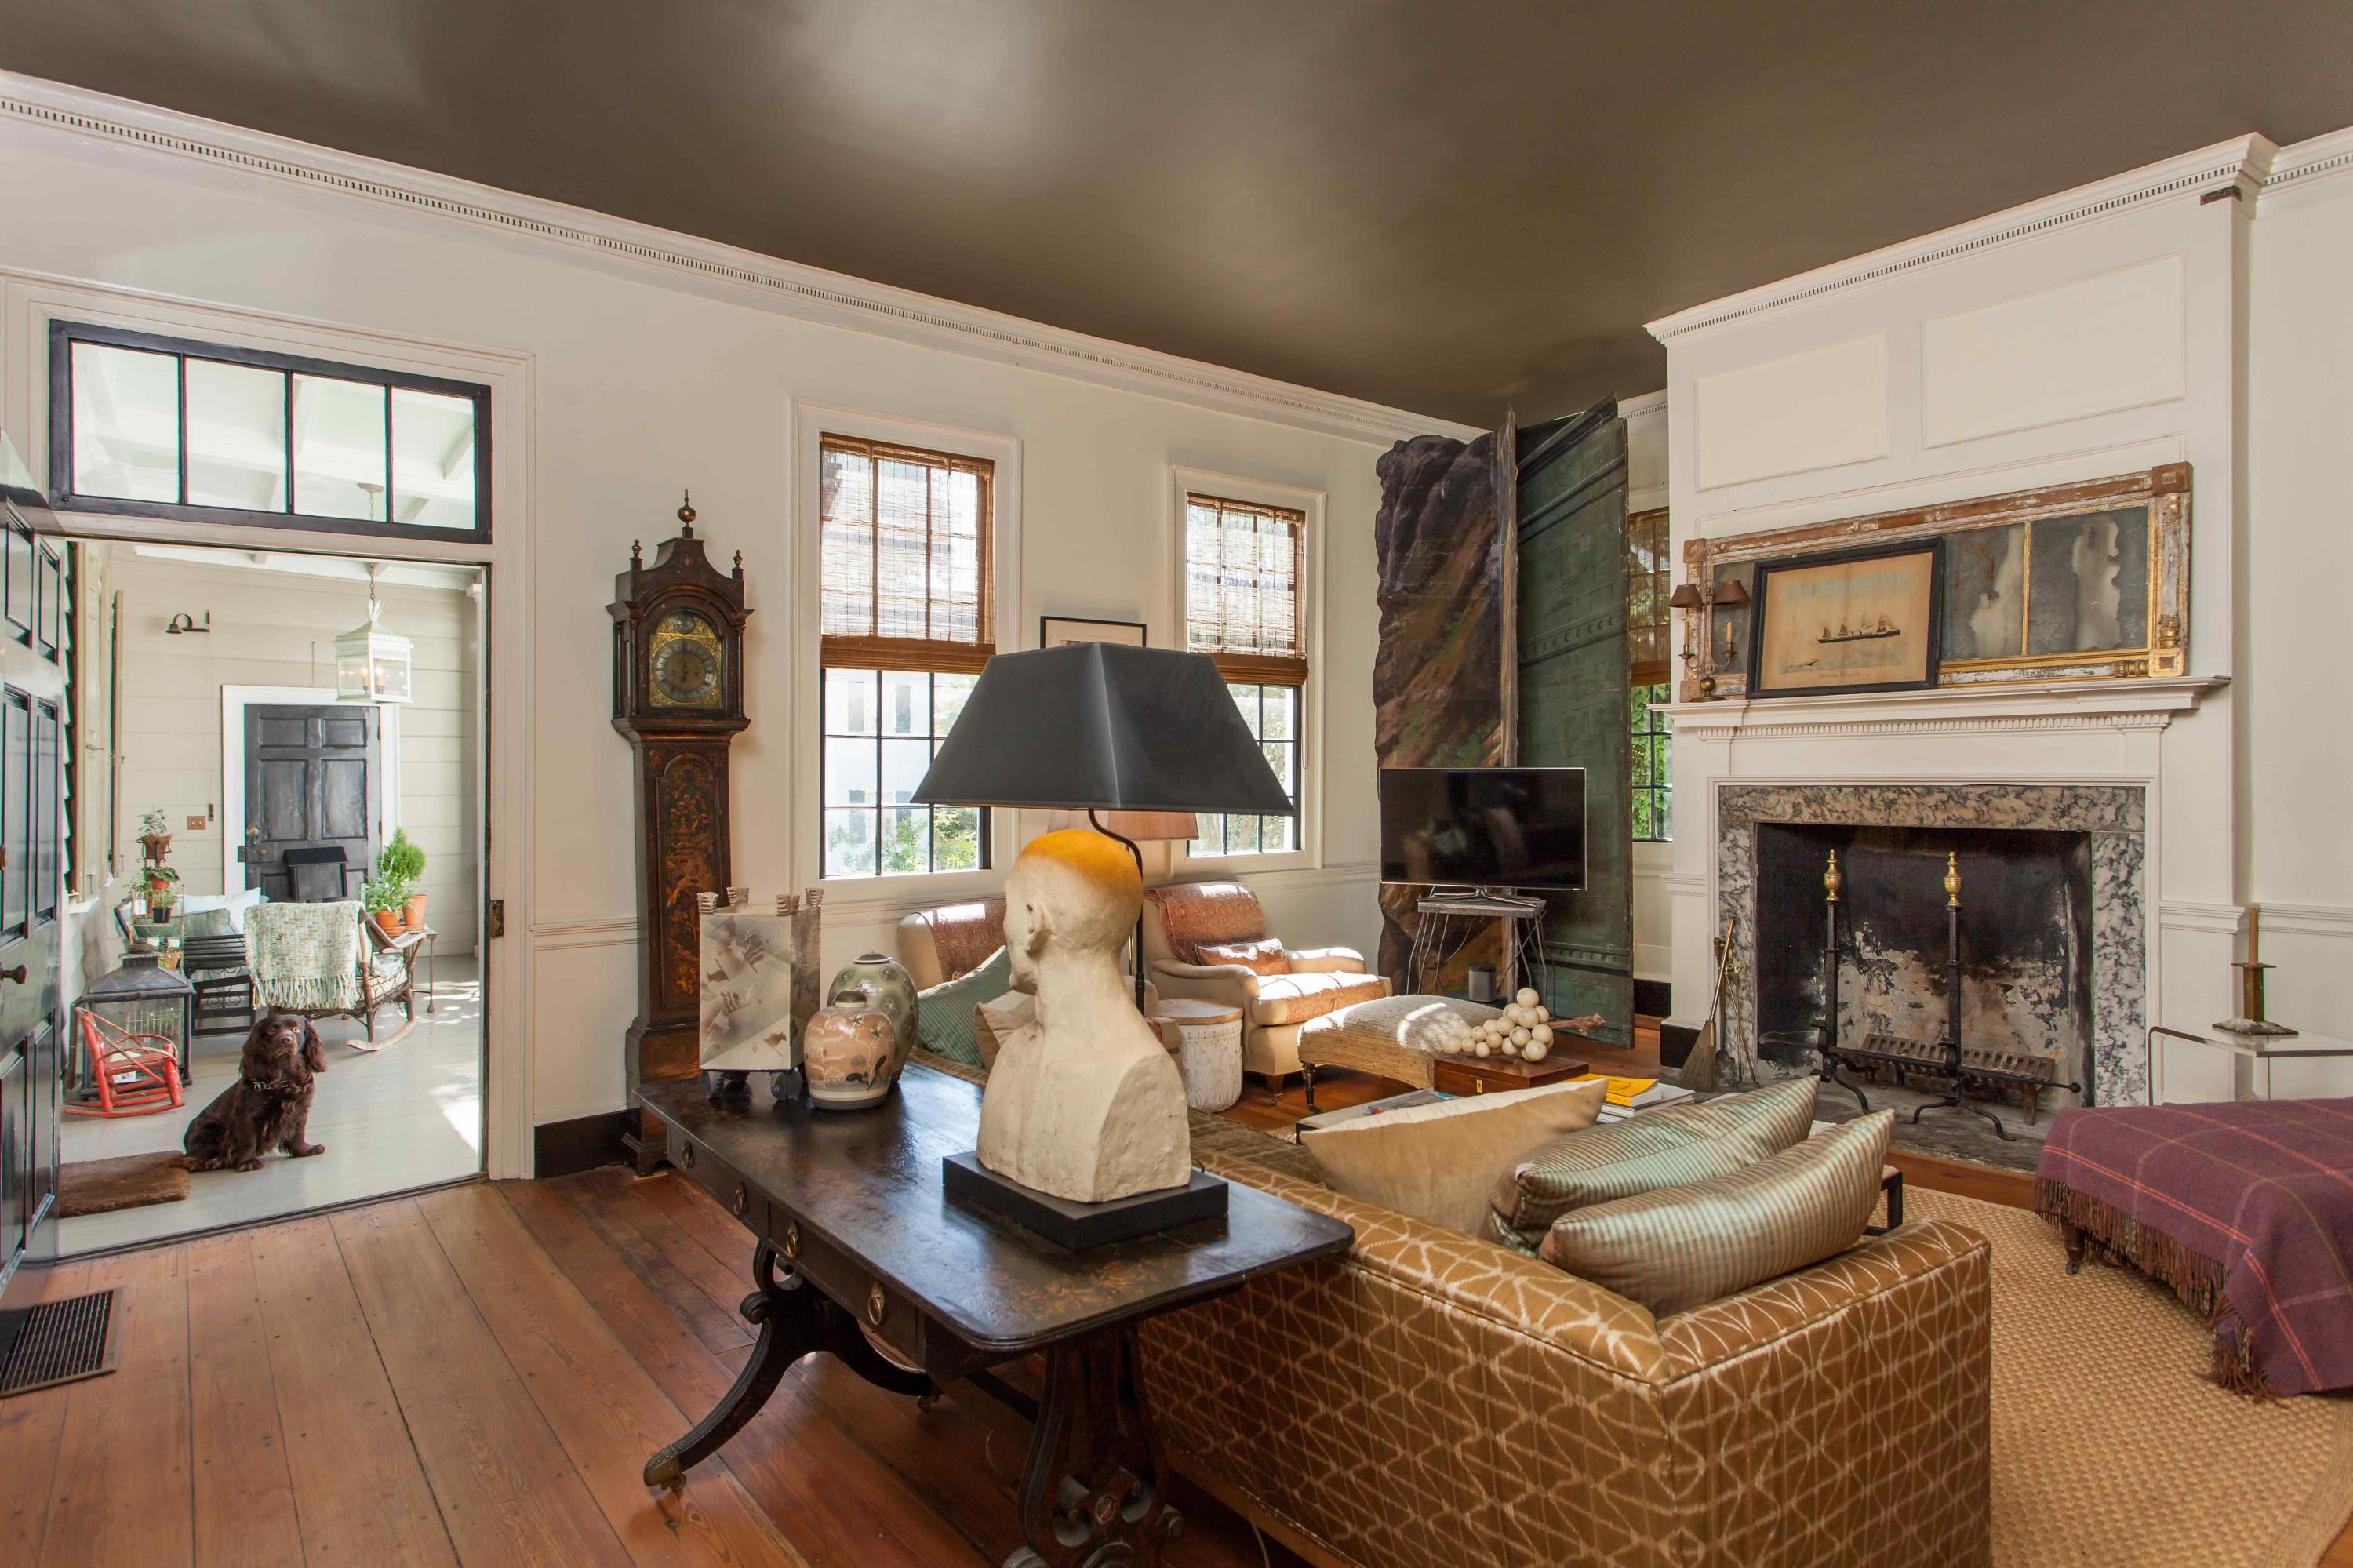 South of Broad Homes For Sale - 58 South Battery, Charleston, SC - 43